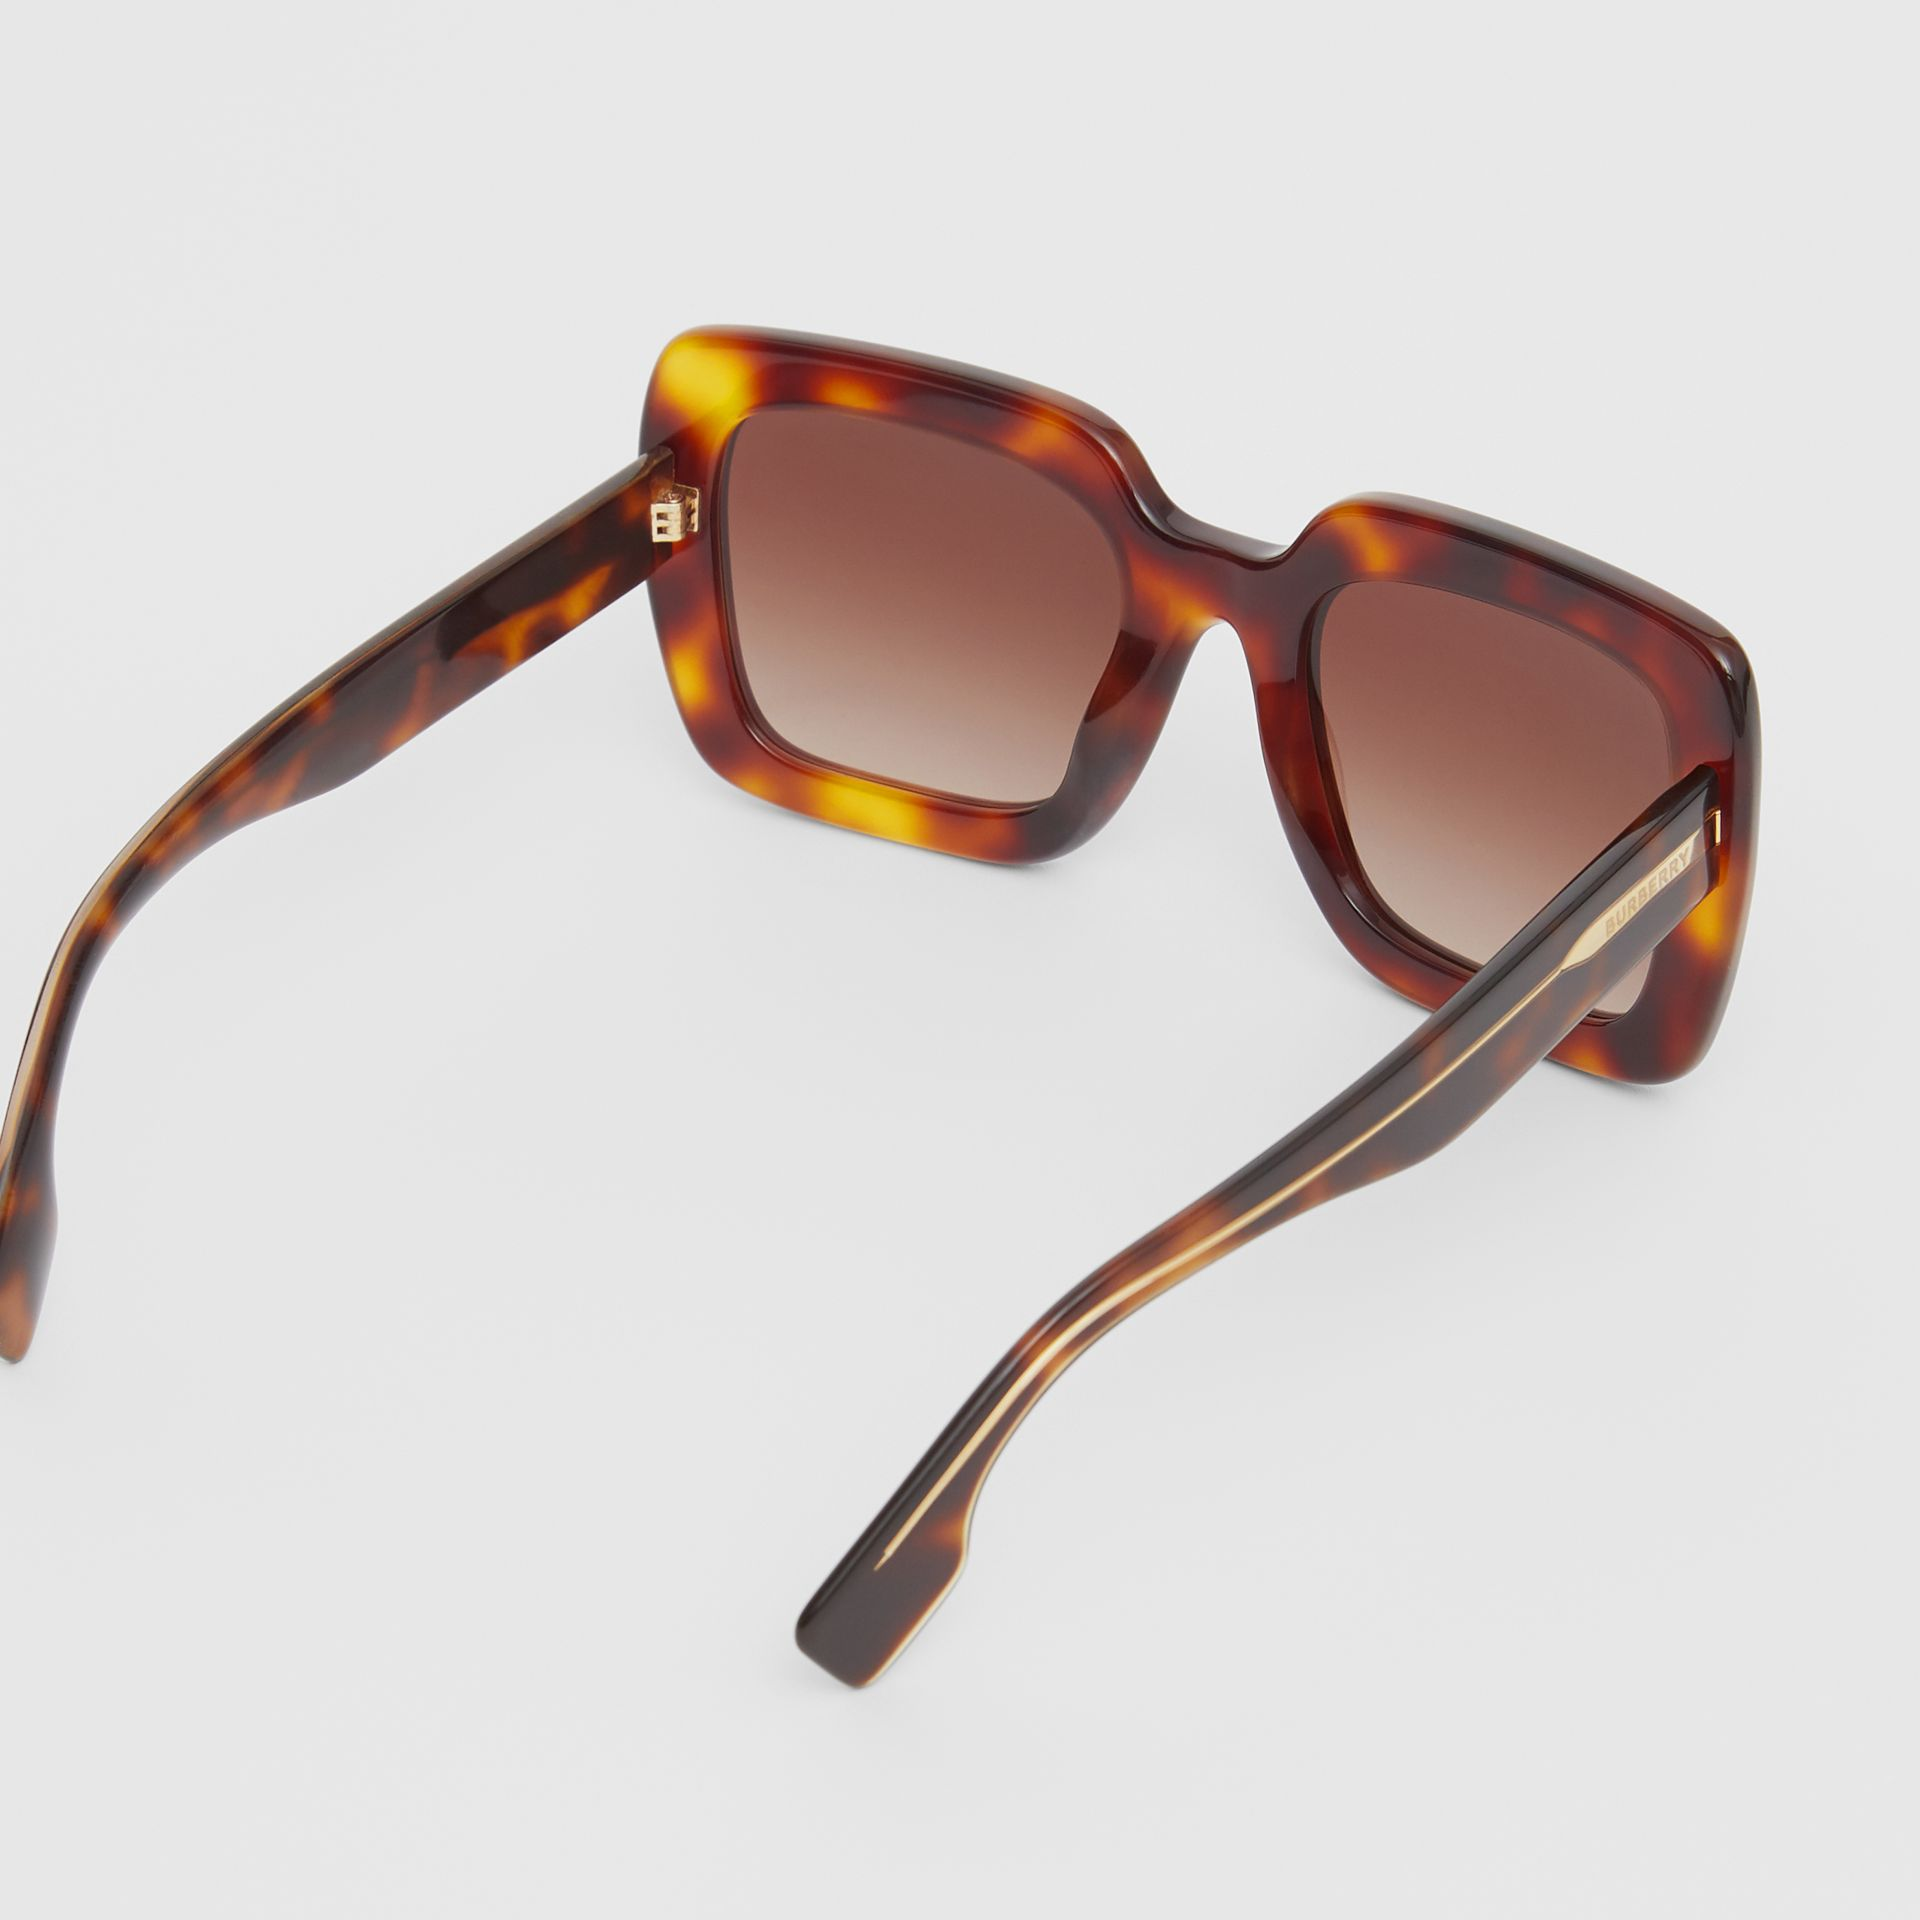 Oversized Square Frame Sunglasses in Tortoiseshell - Women | Burberry Australia - gallery image 3